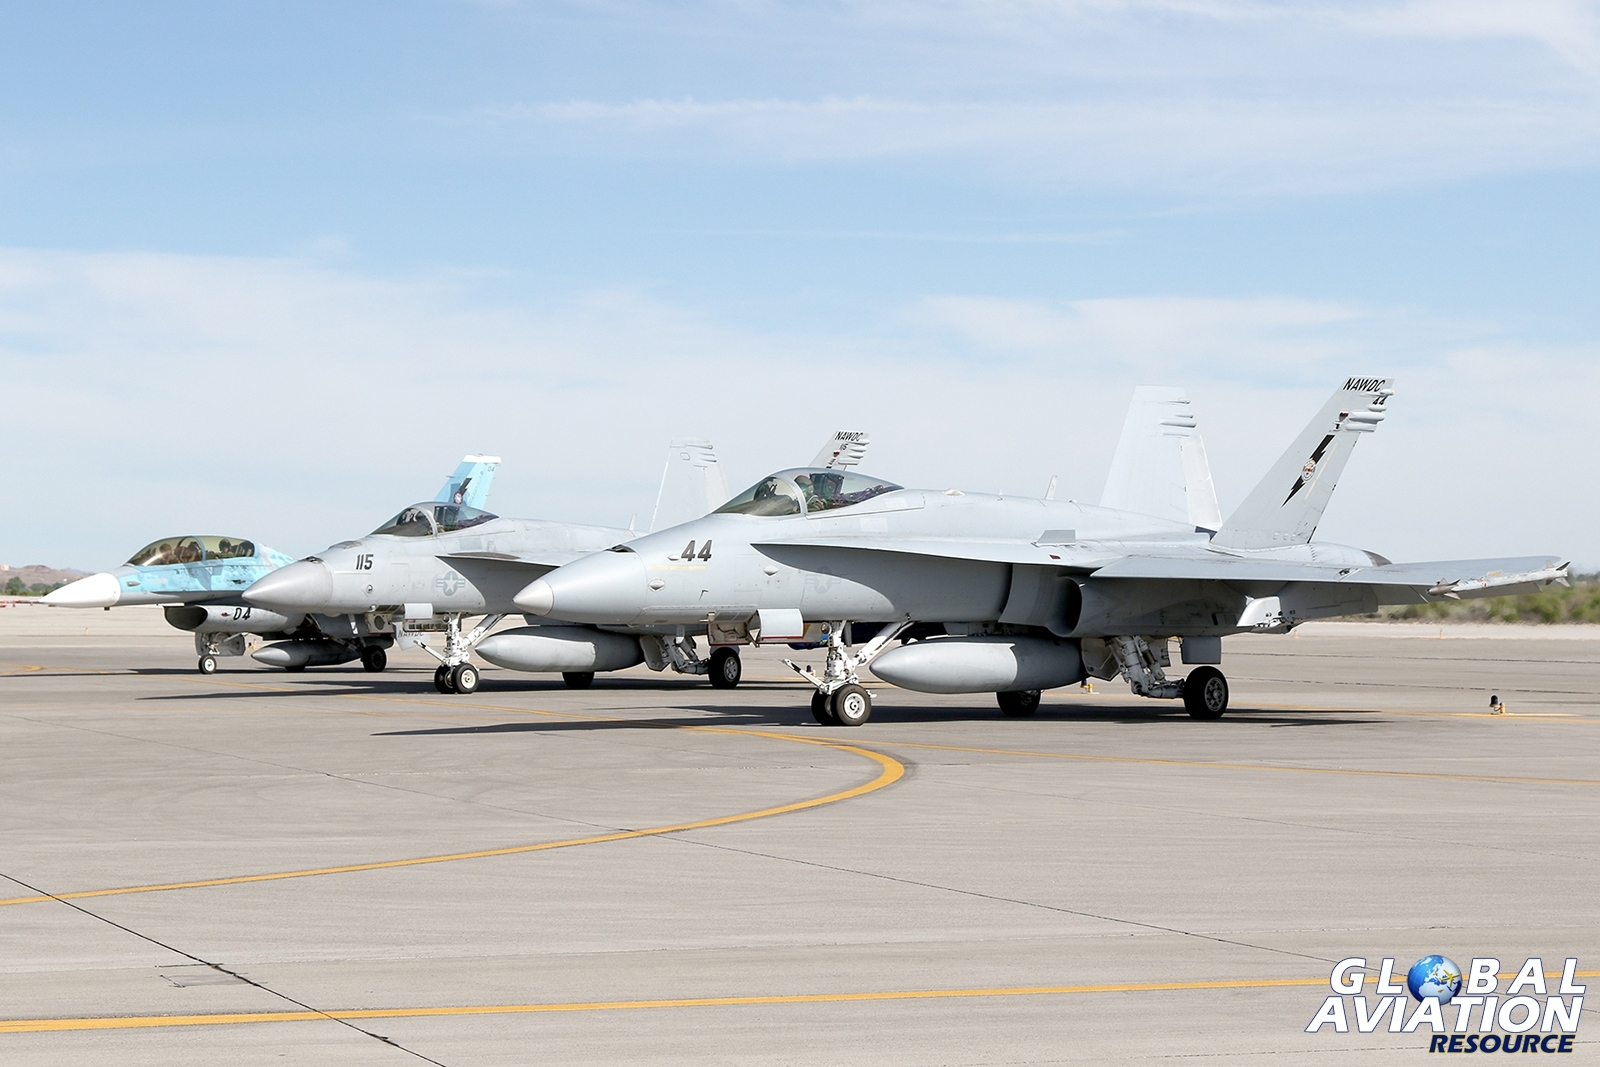 A line-up of NAWDC assigned aircraft holding prior to departure, including an F-16B, F/A-18E and F/A-18C © Paul Dunn - Global Aviation Resource